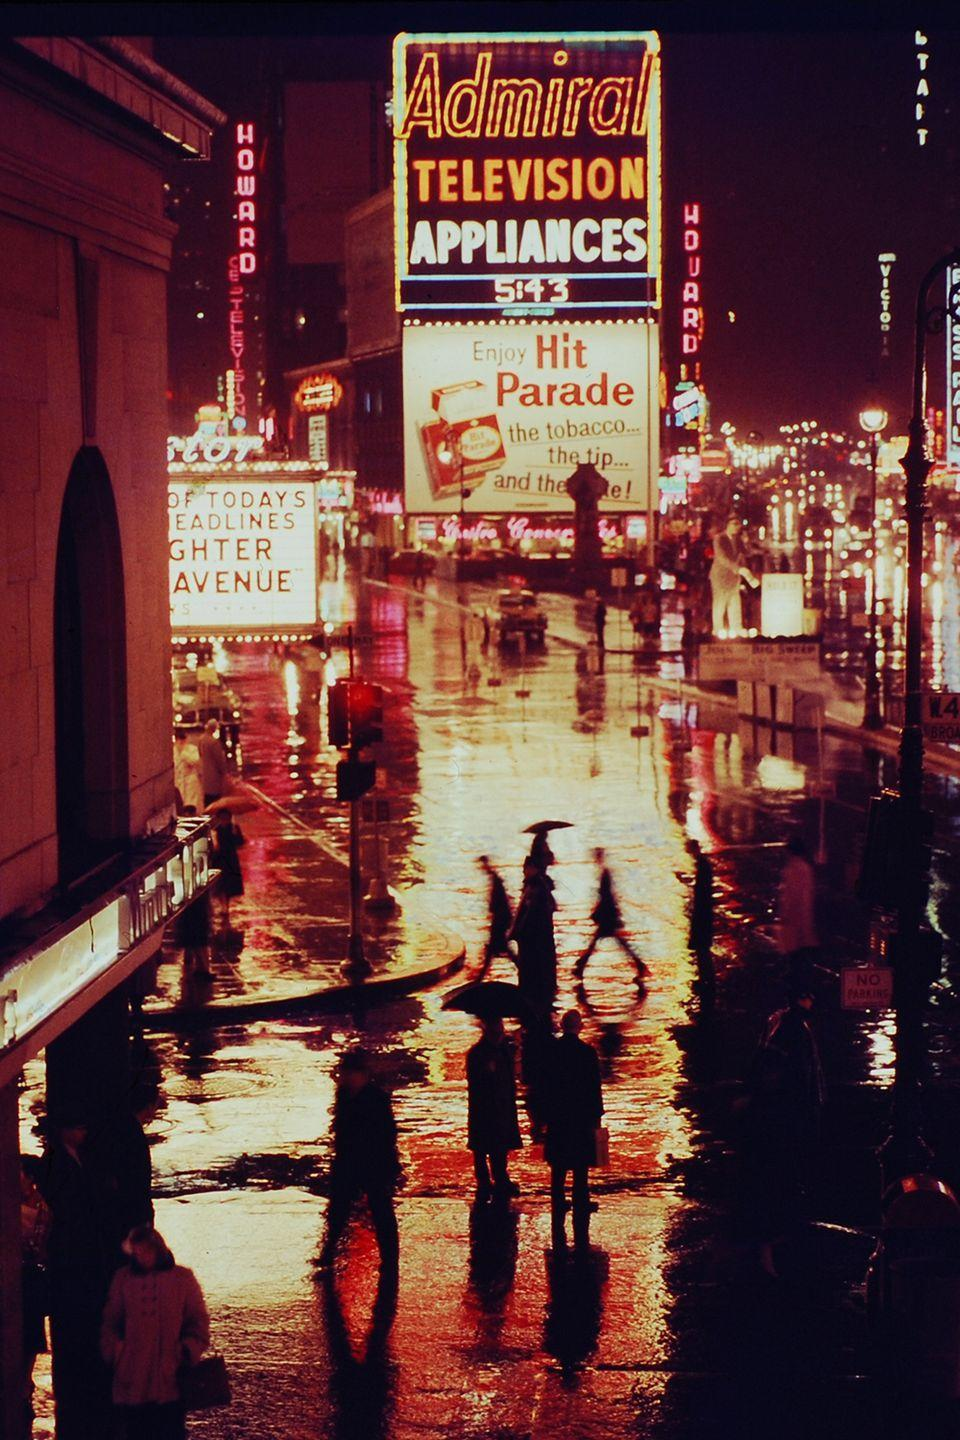 <p>The theater and billboard lights of Times Square illuminate the streets on a rainy night.</p>